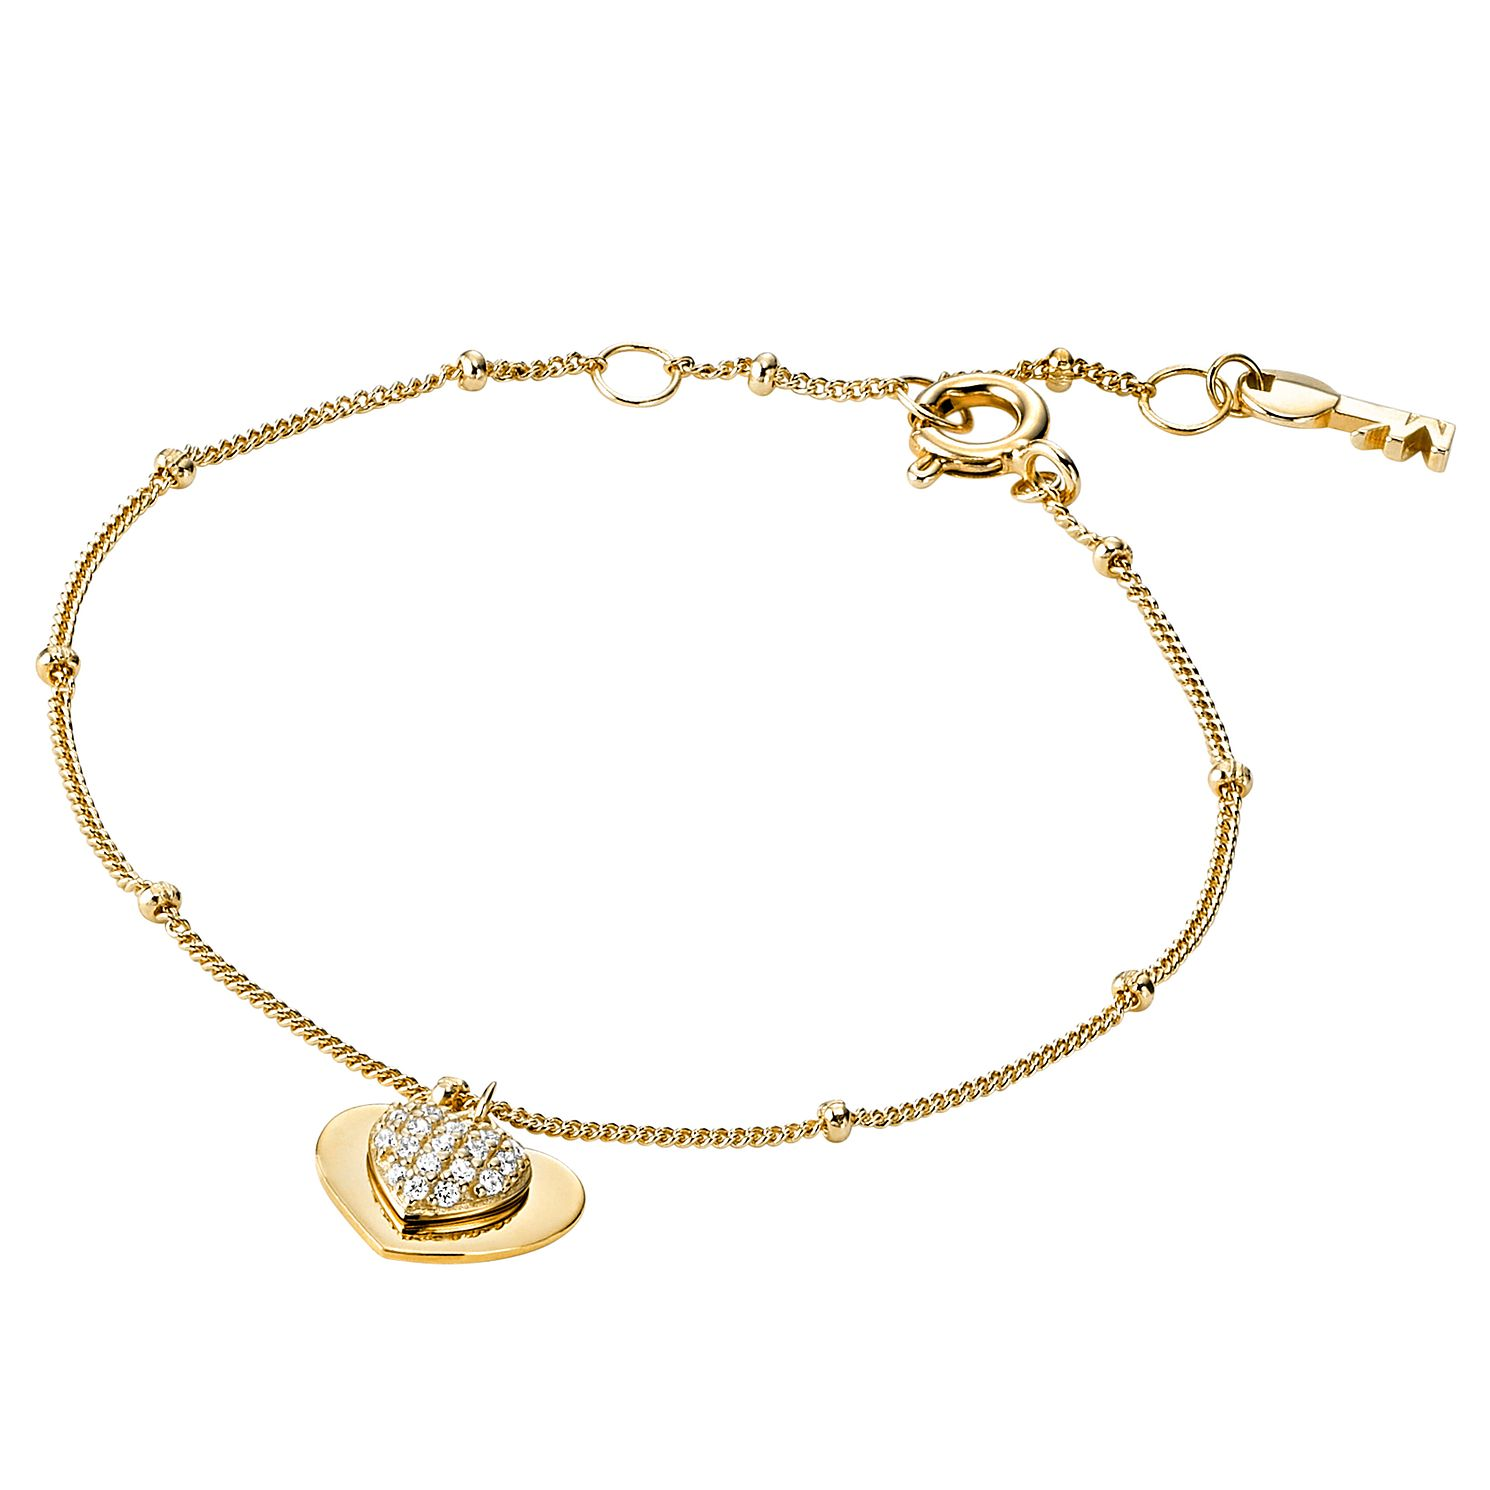 Michael Kors 14ct Gold Plated Silver Kors Love Bracelet - Product number 9801286